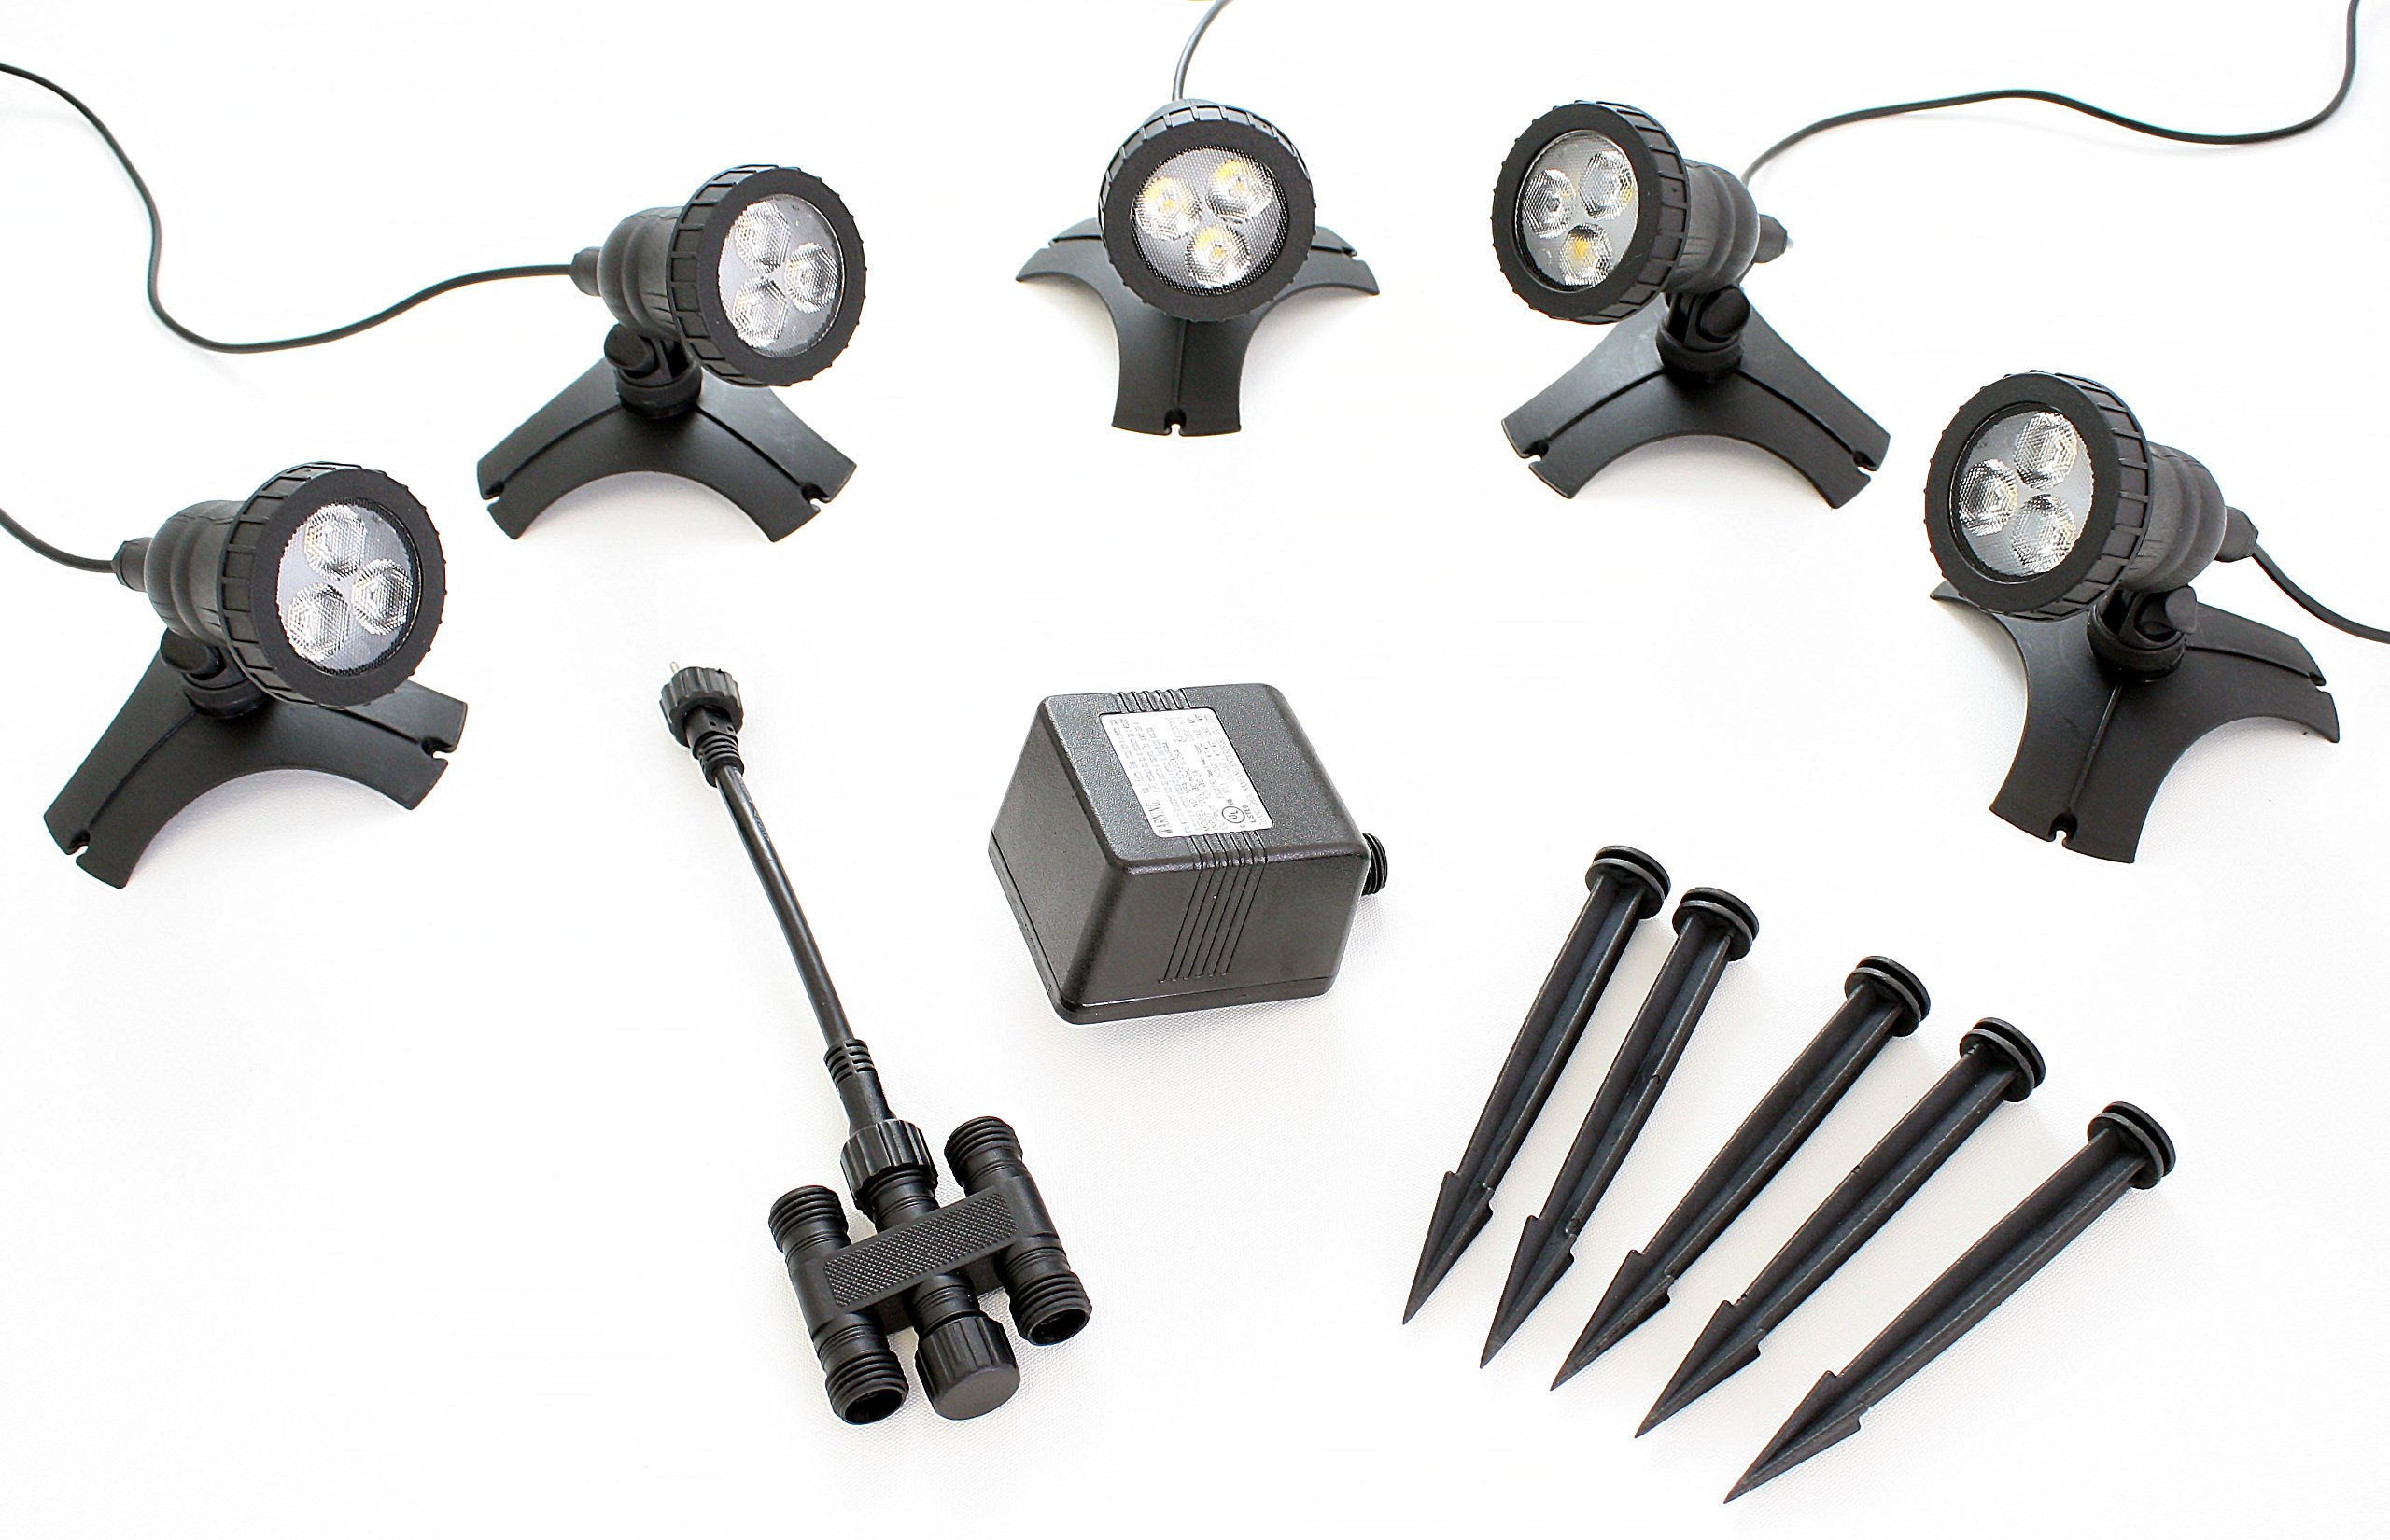 Pond Force LED Pond Light Kit (5 Light Kit)